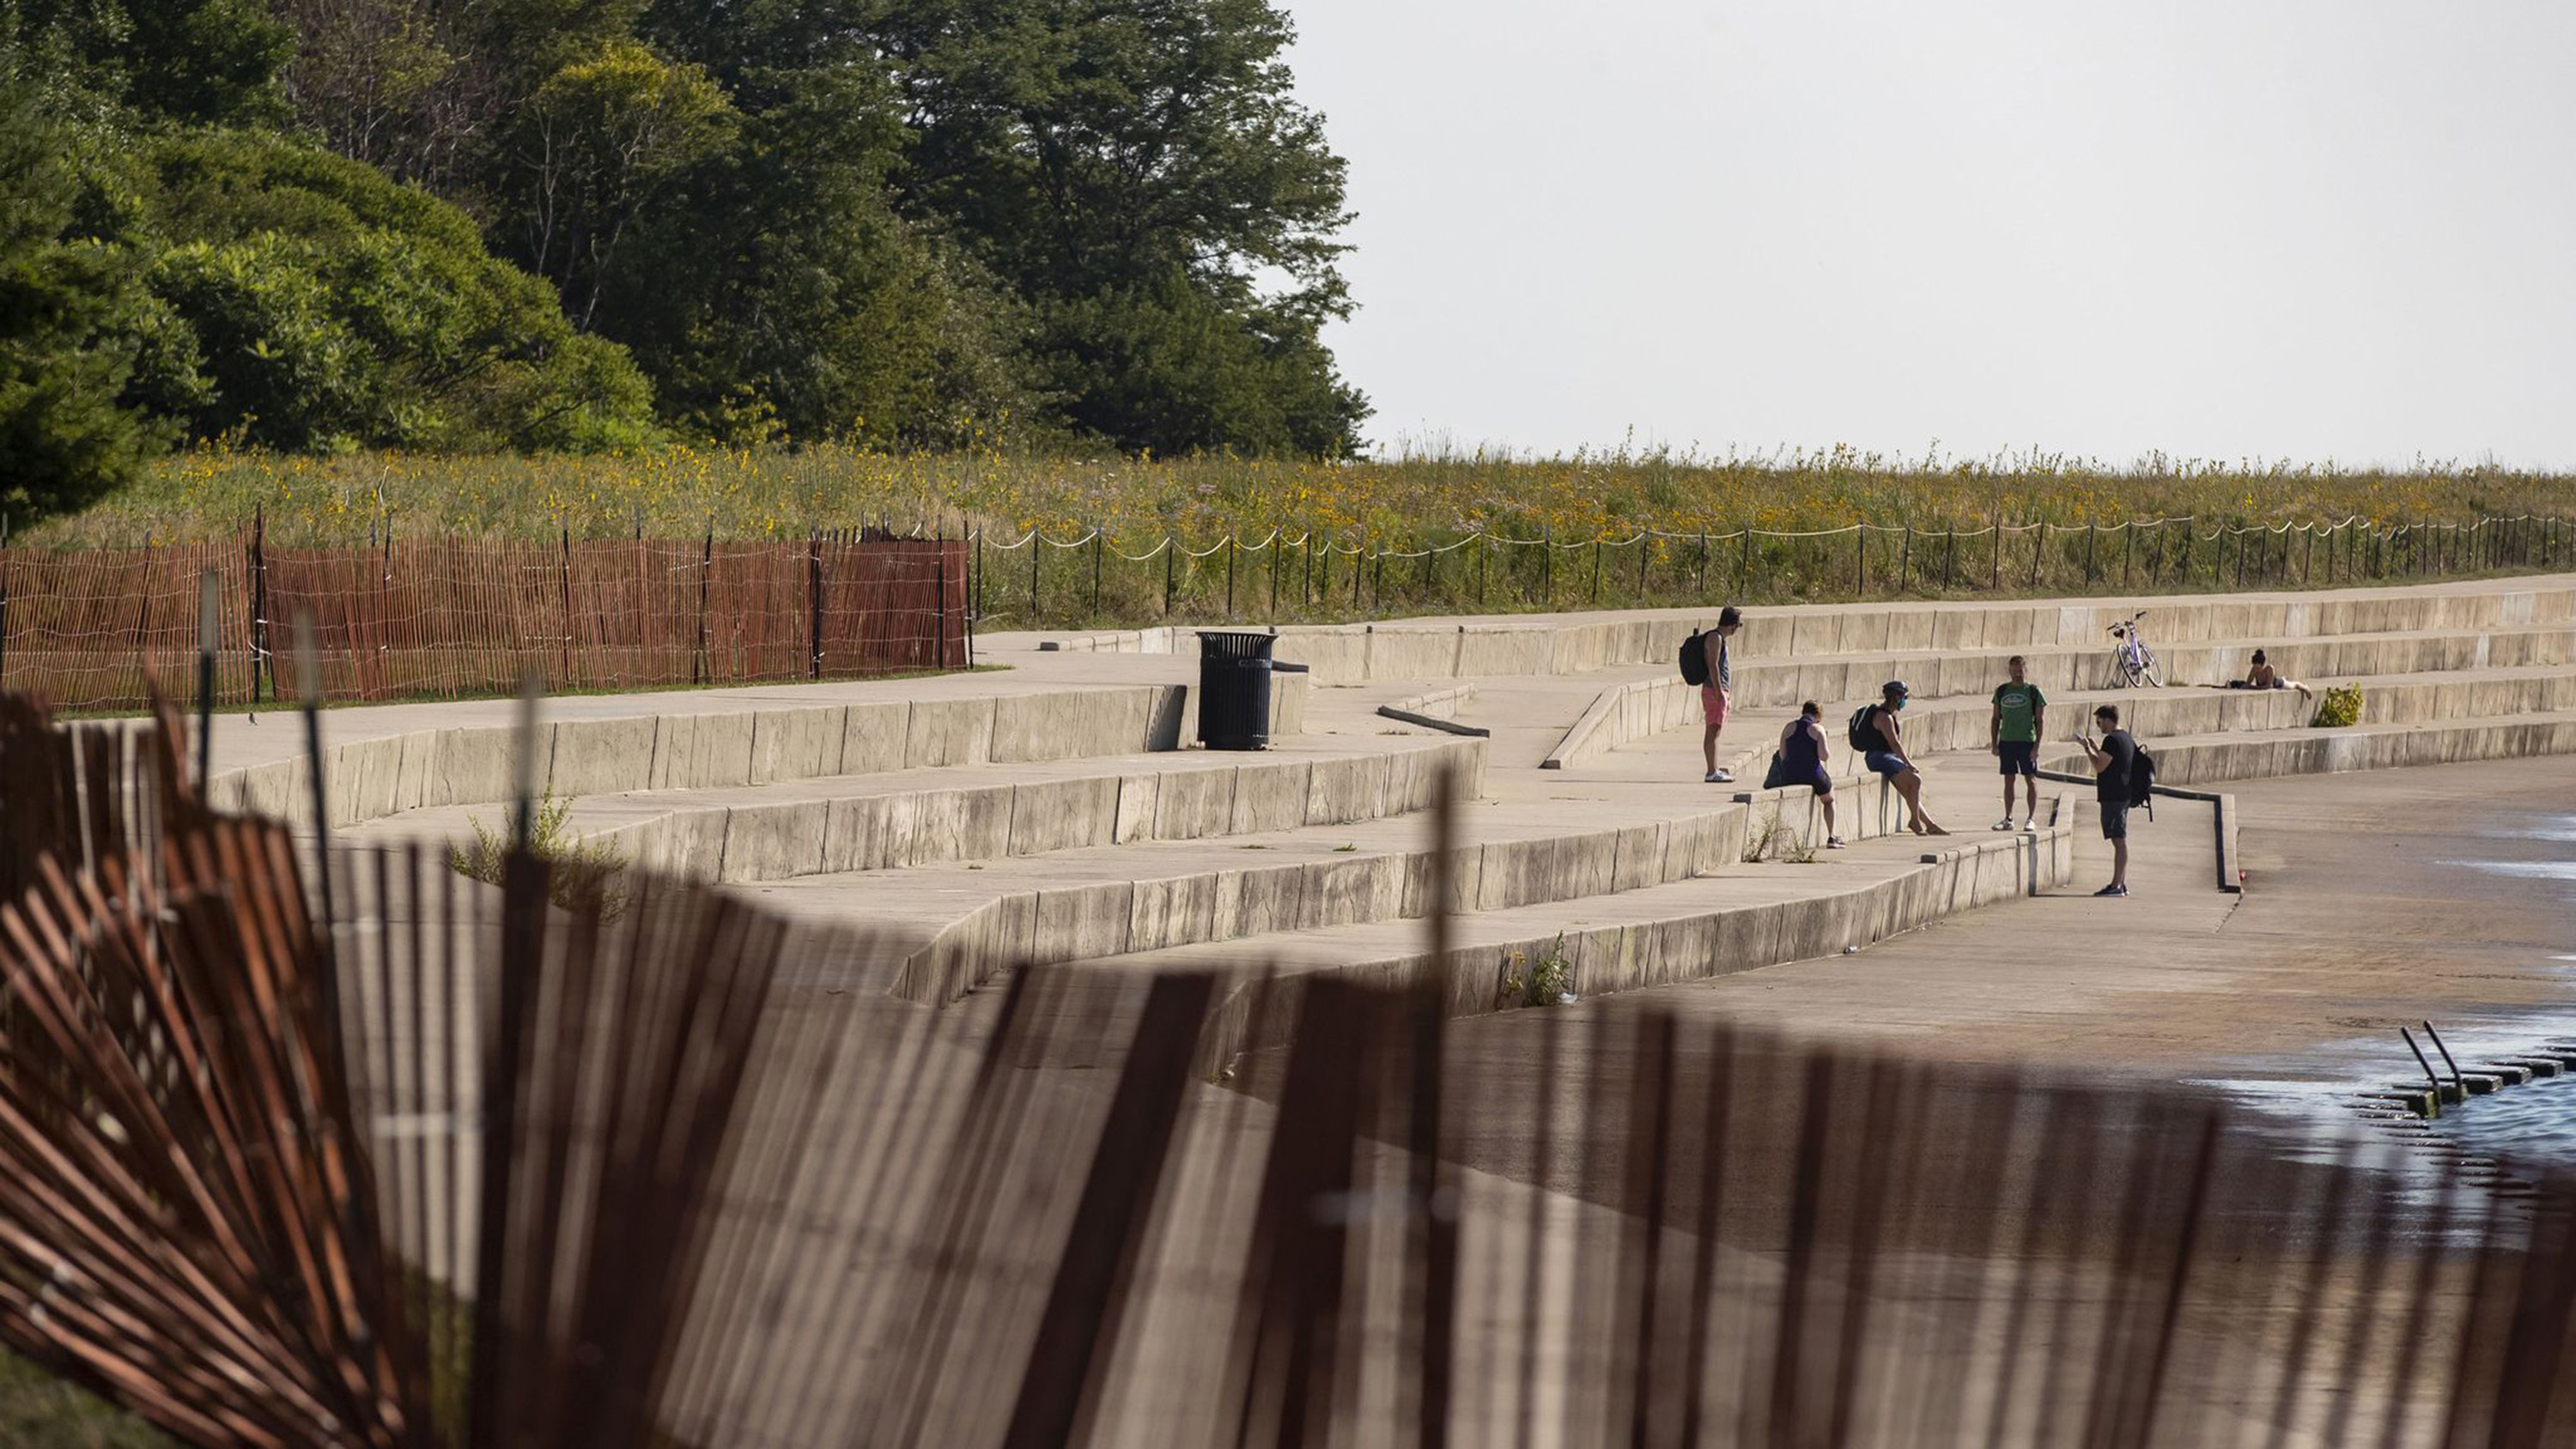 Chicagos Montrose Harbor blocked by police, fence after Mayor Lori Lightfoot shuts down large beach party: Its being addressed